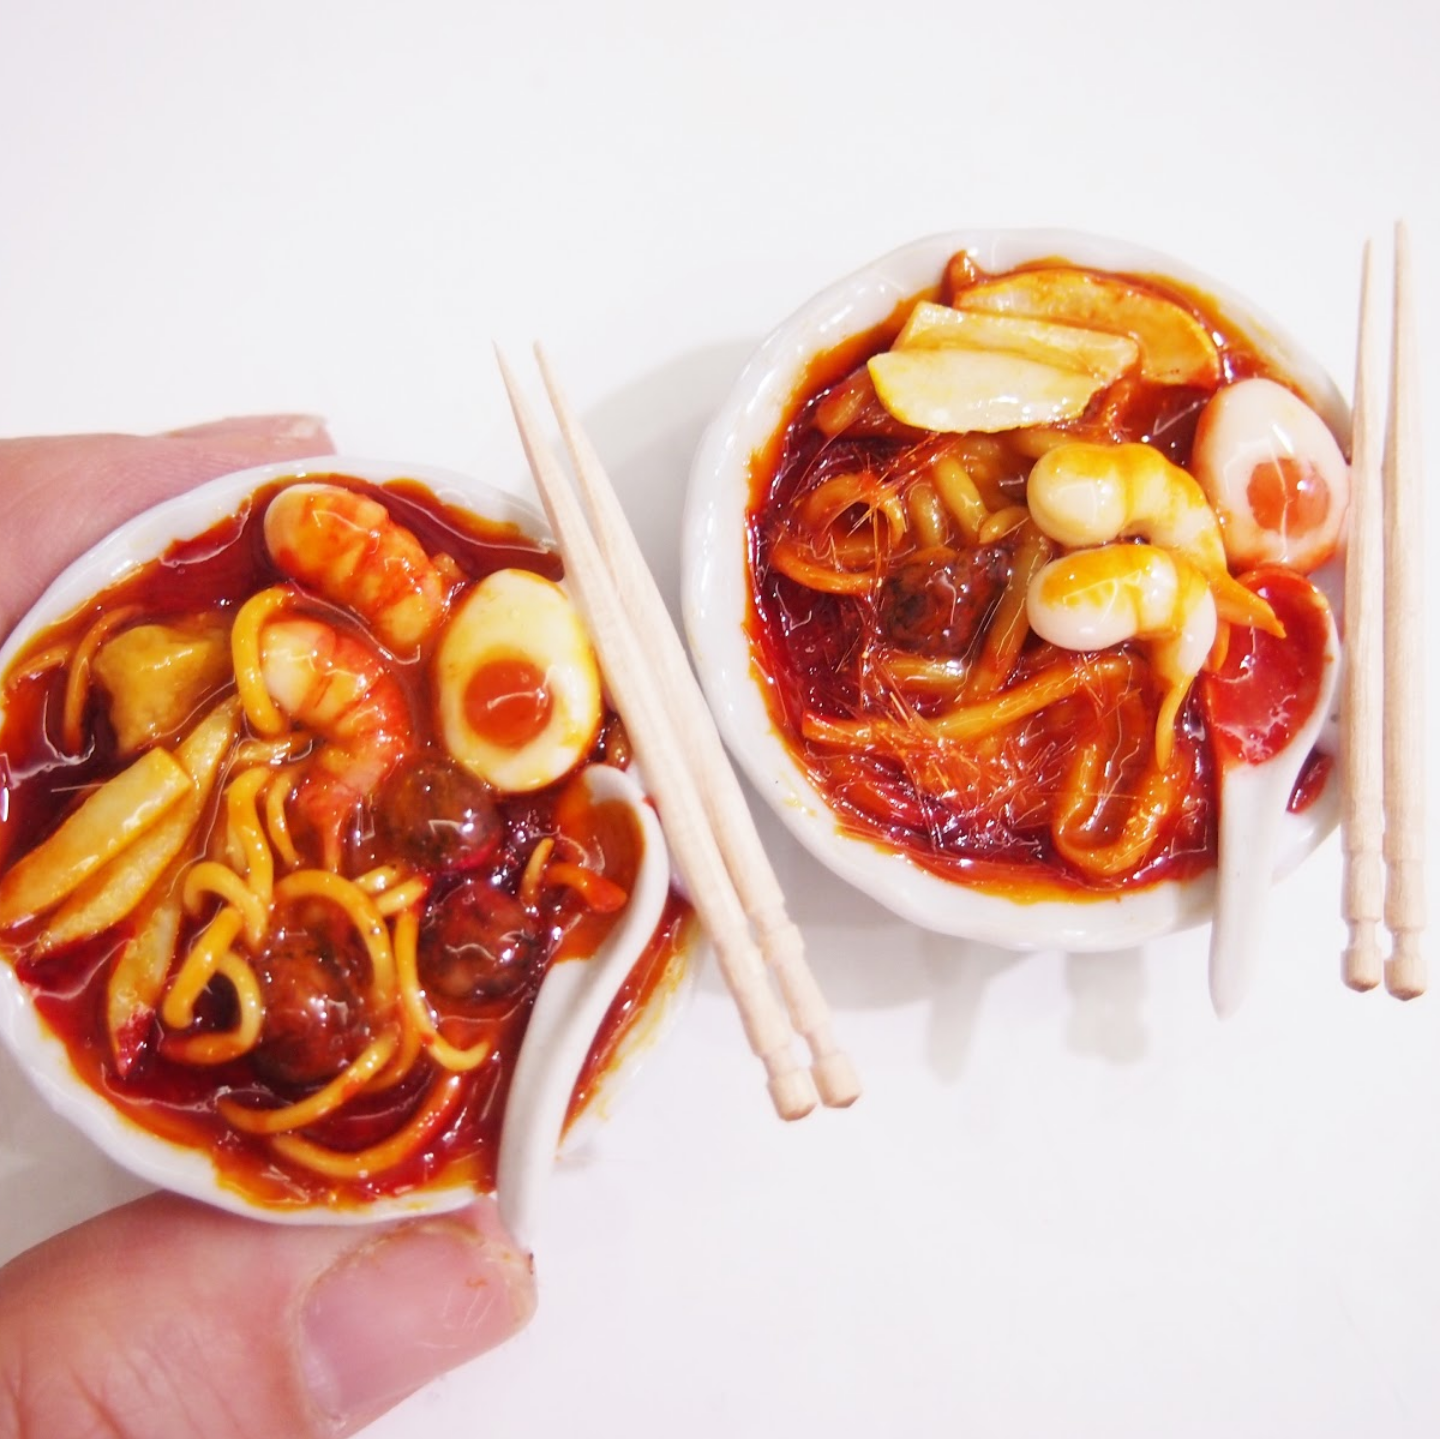 Workshop - Miniature Food Sculpting Laksa Bowl